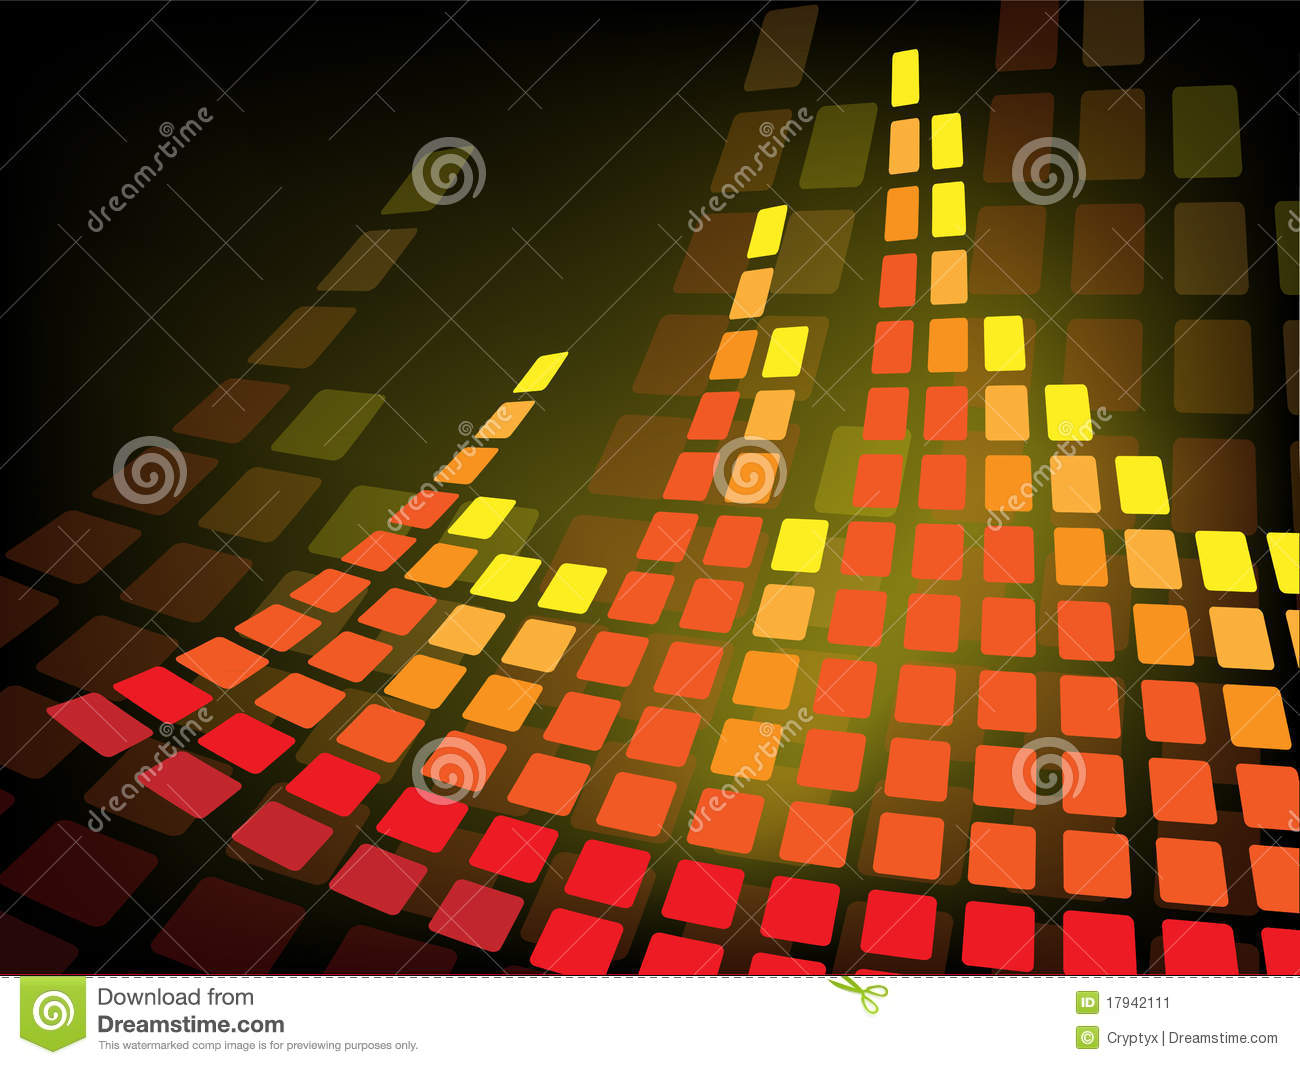 Music Bars Wallpaper: Abstract Background With Music Bar Stock Illustration